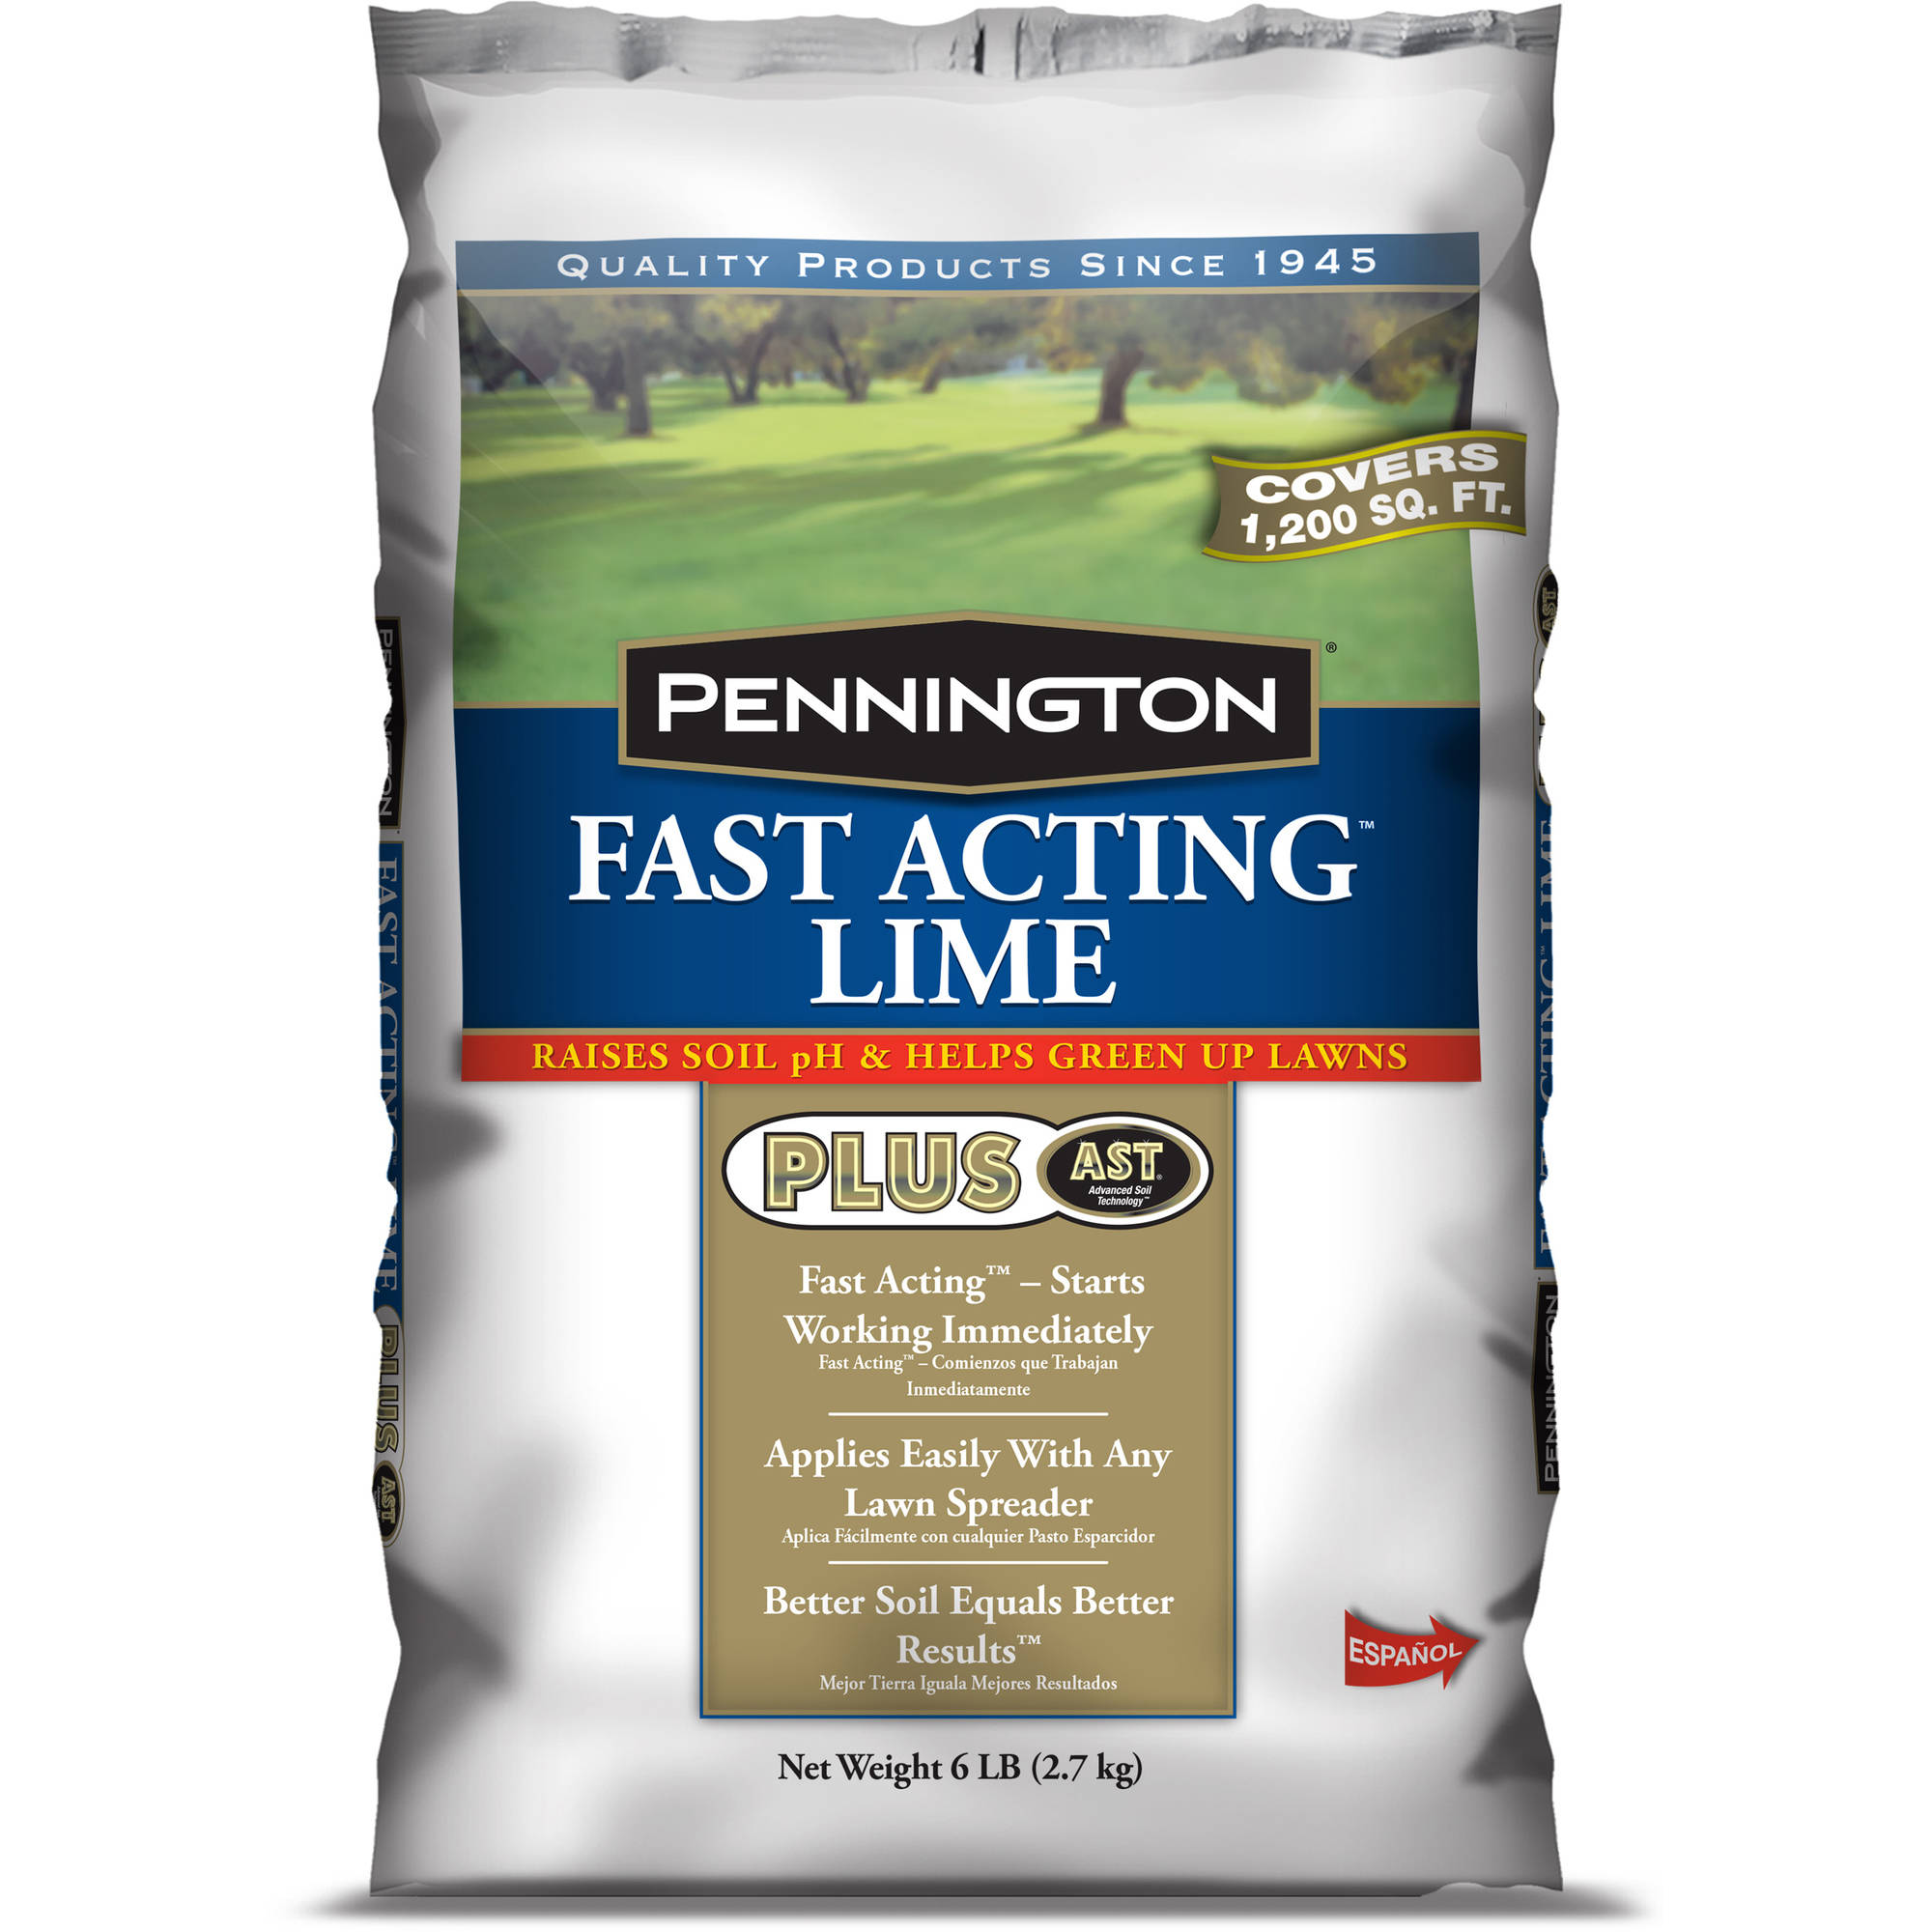 Pennington Fast Acting Lime Plus AST Soil Conditioner, 30 lbs